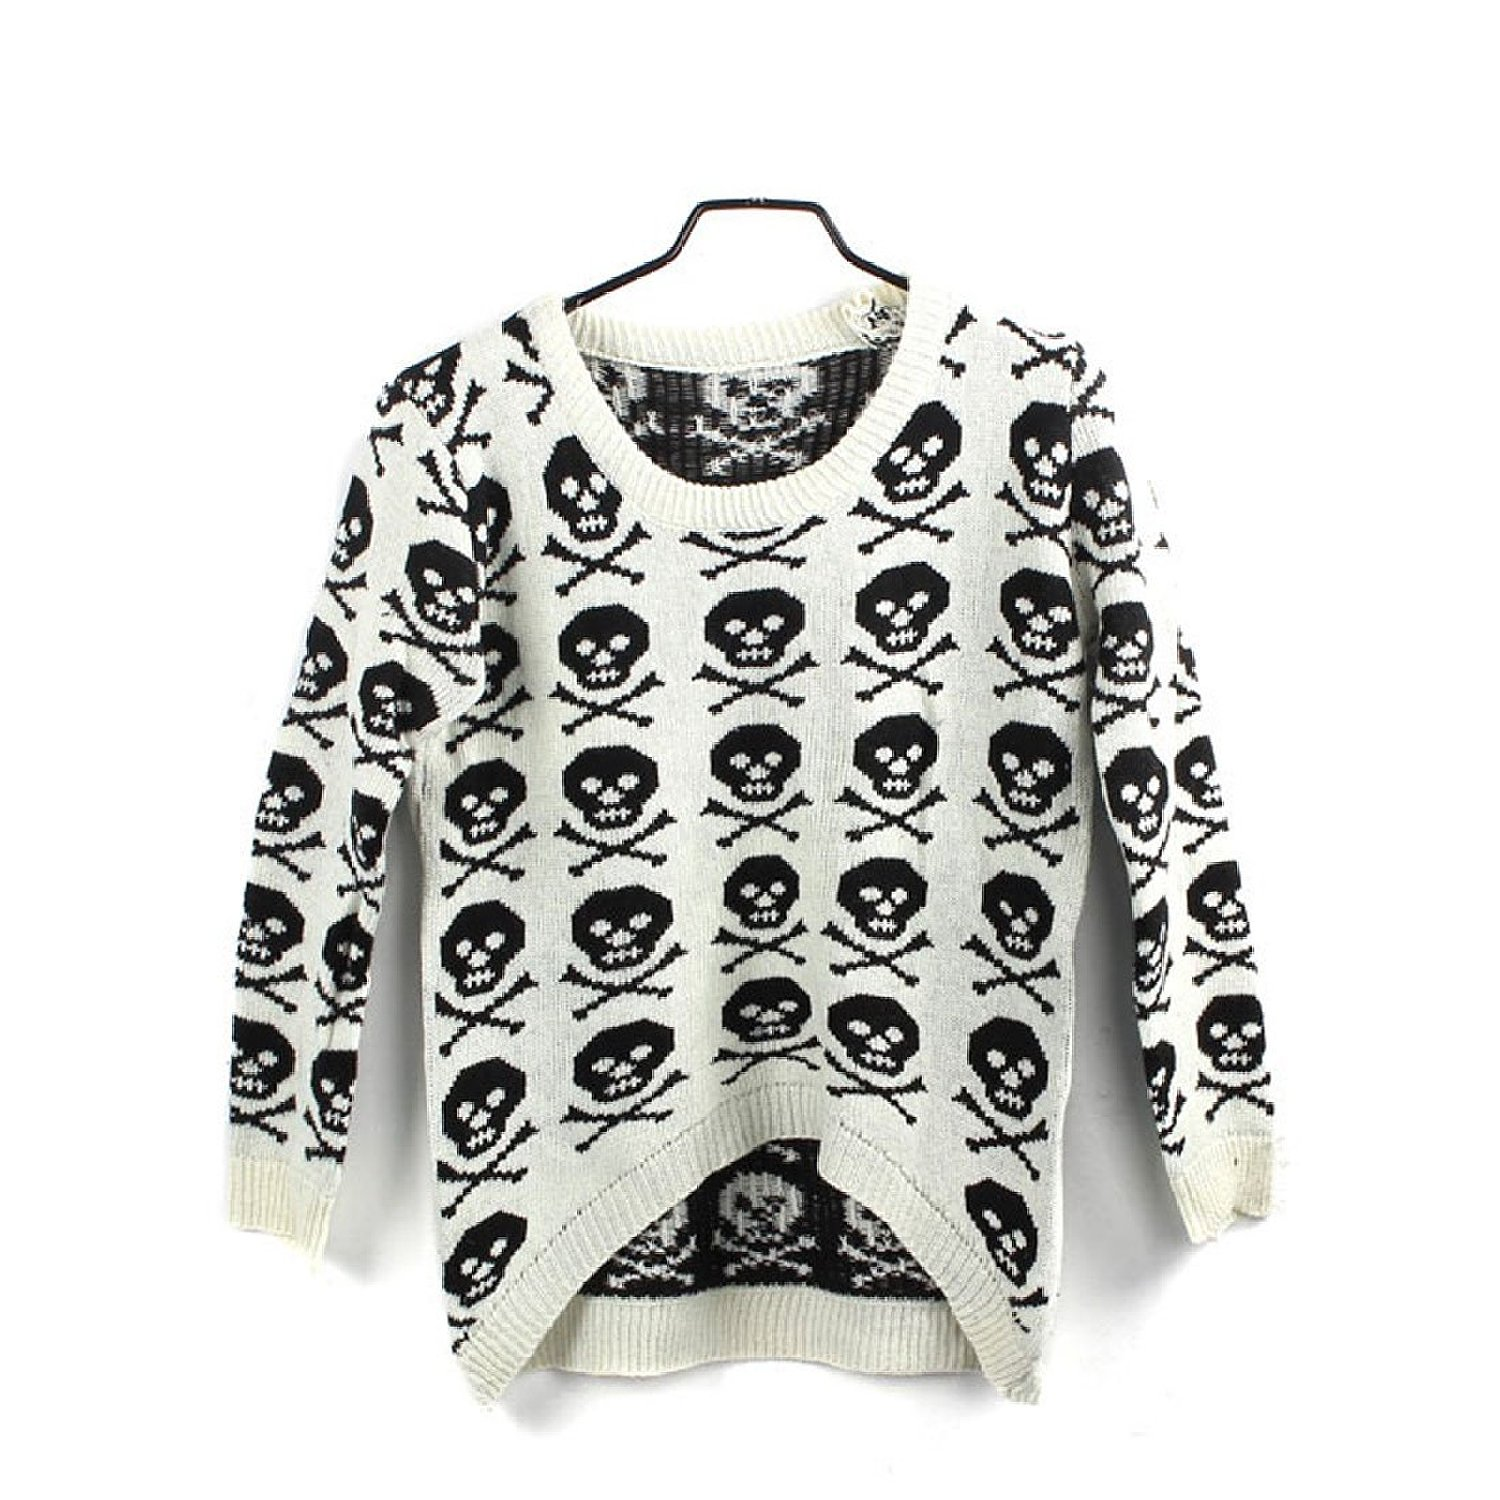 Willtoo(tm) women long sleeve knitted skull pullover tops loose sweater at amazon women's clothing store: